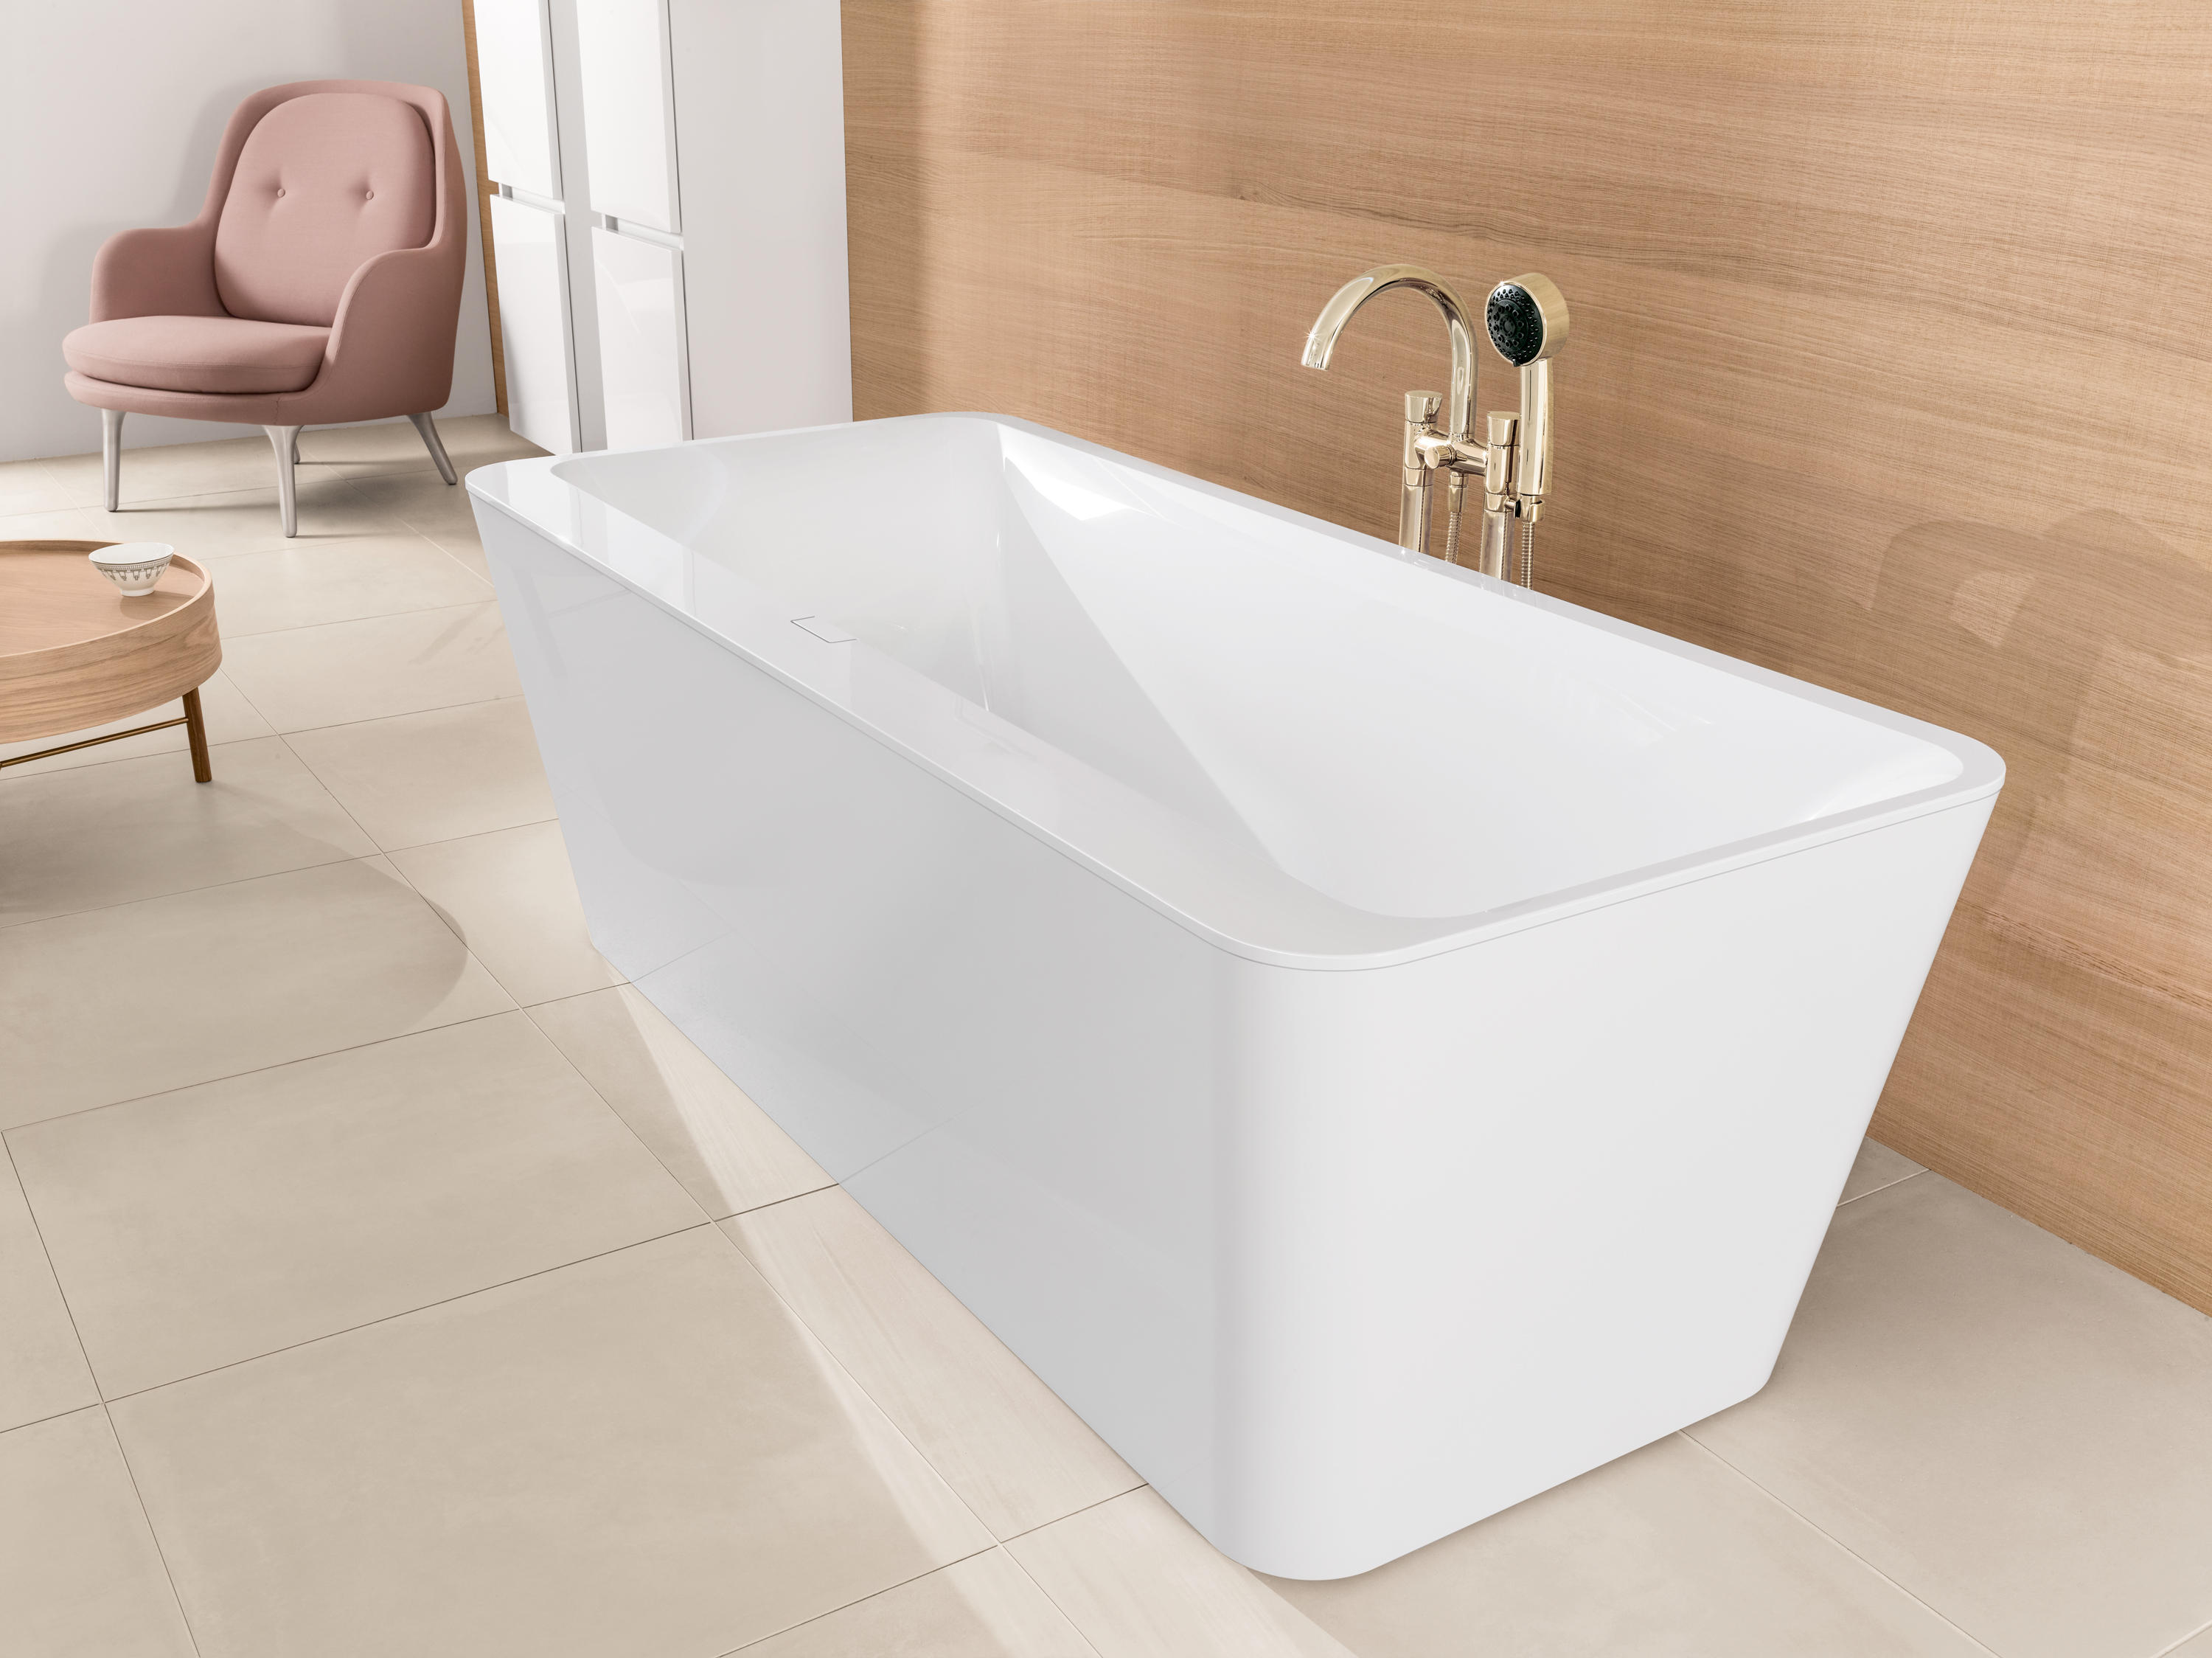 squaro edge 12 bath bathtubs from villeroy boch. Black Bedroom Furniture Sets. Home Design Ideas